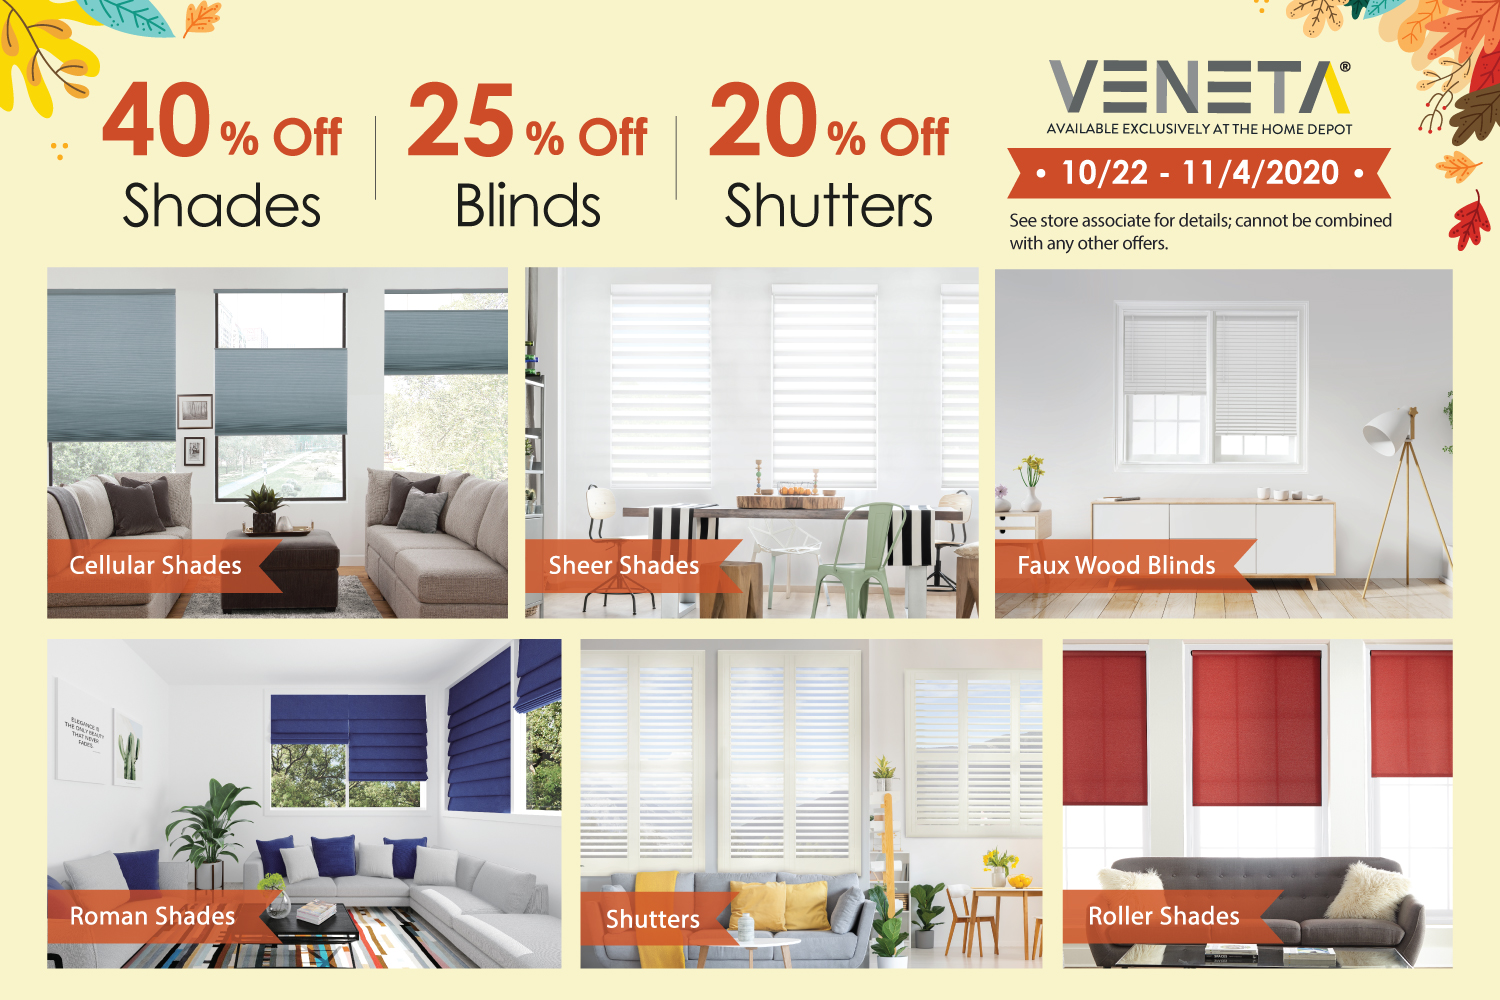 40% off Veneta shades, 25% off blinds and 20% off shutters from 10/22 through 11/4! Veneta Window Fashions are exclusively available at The Home Depot.